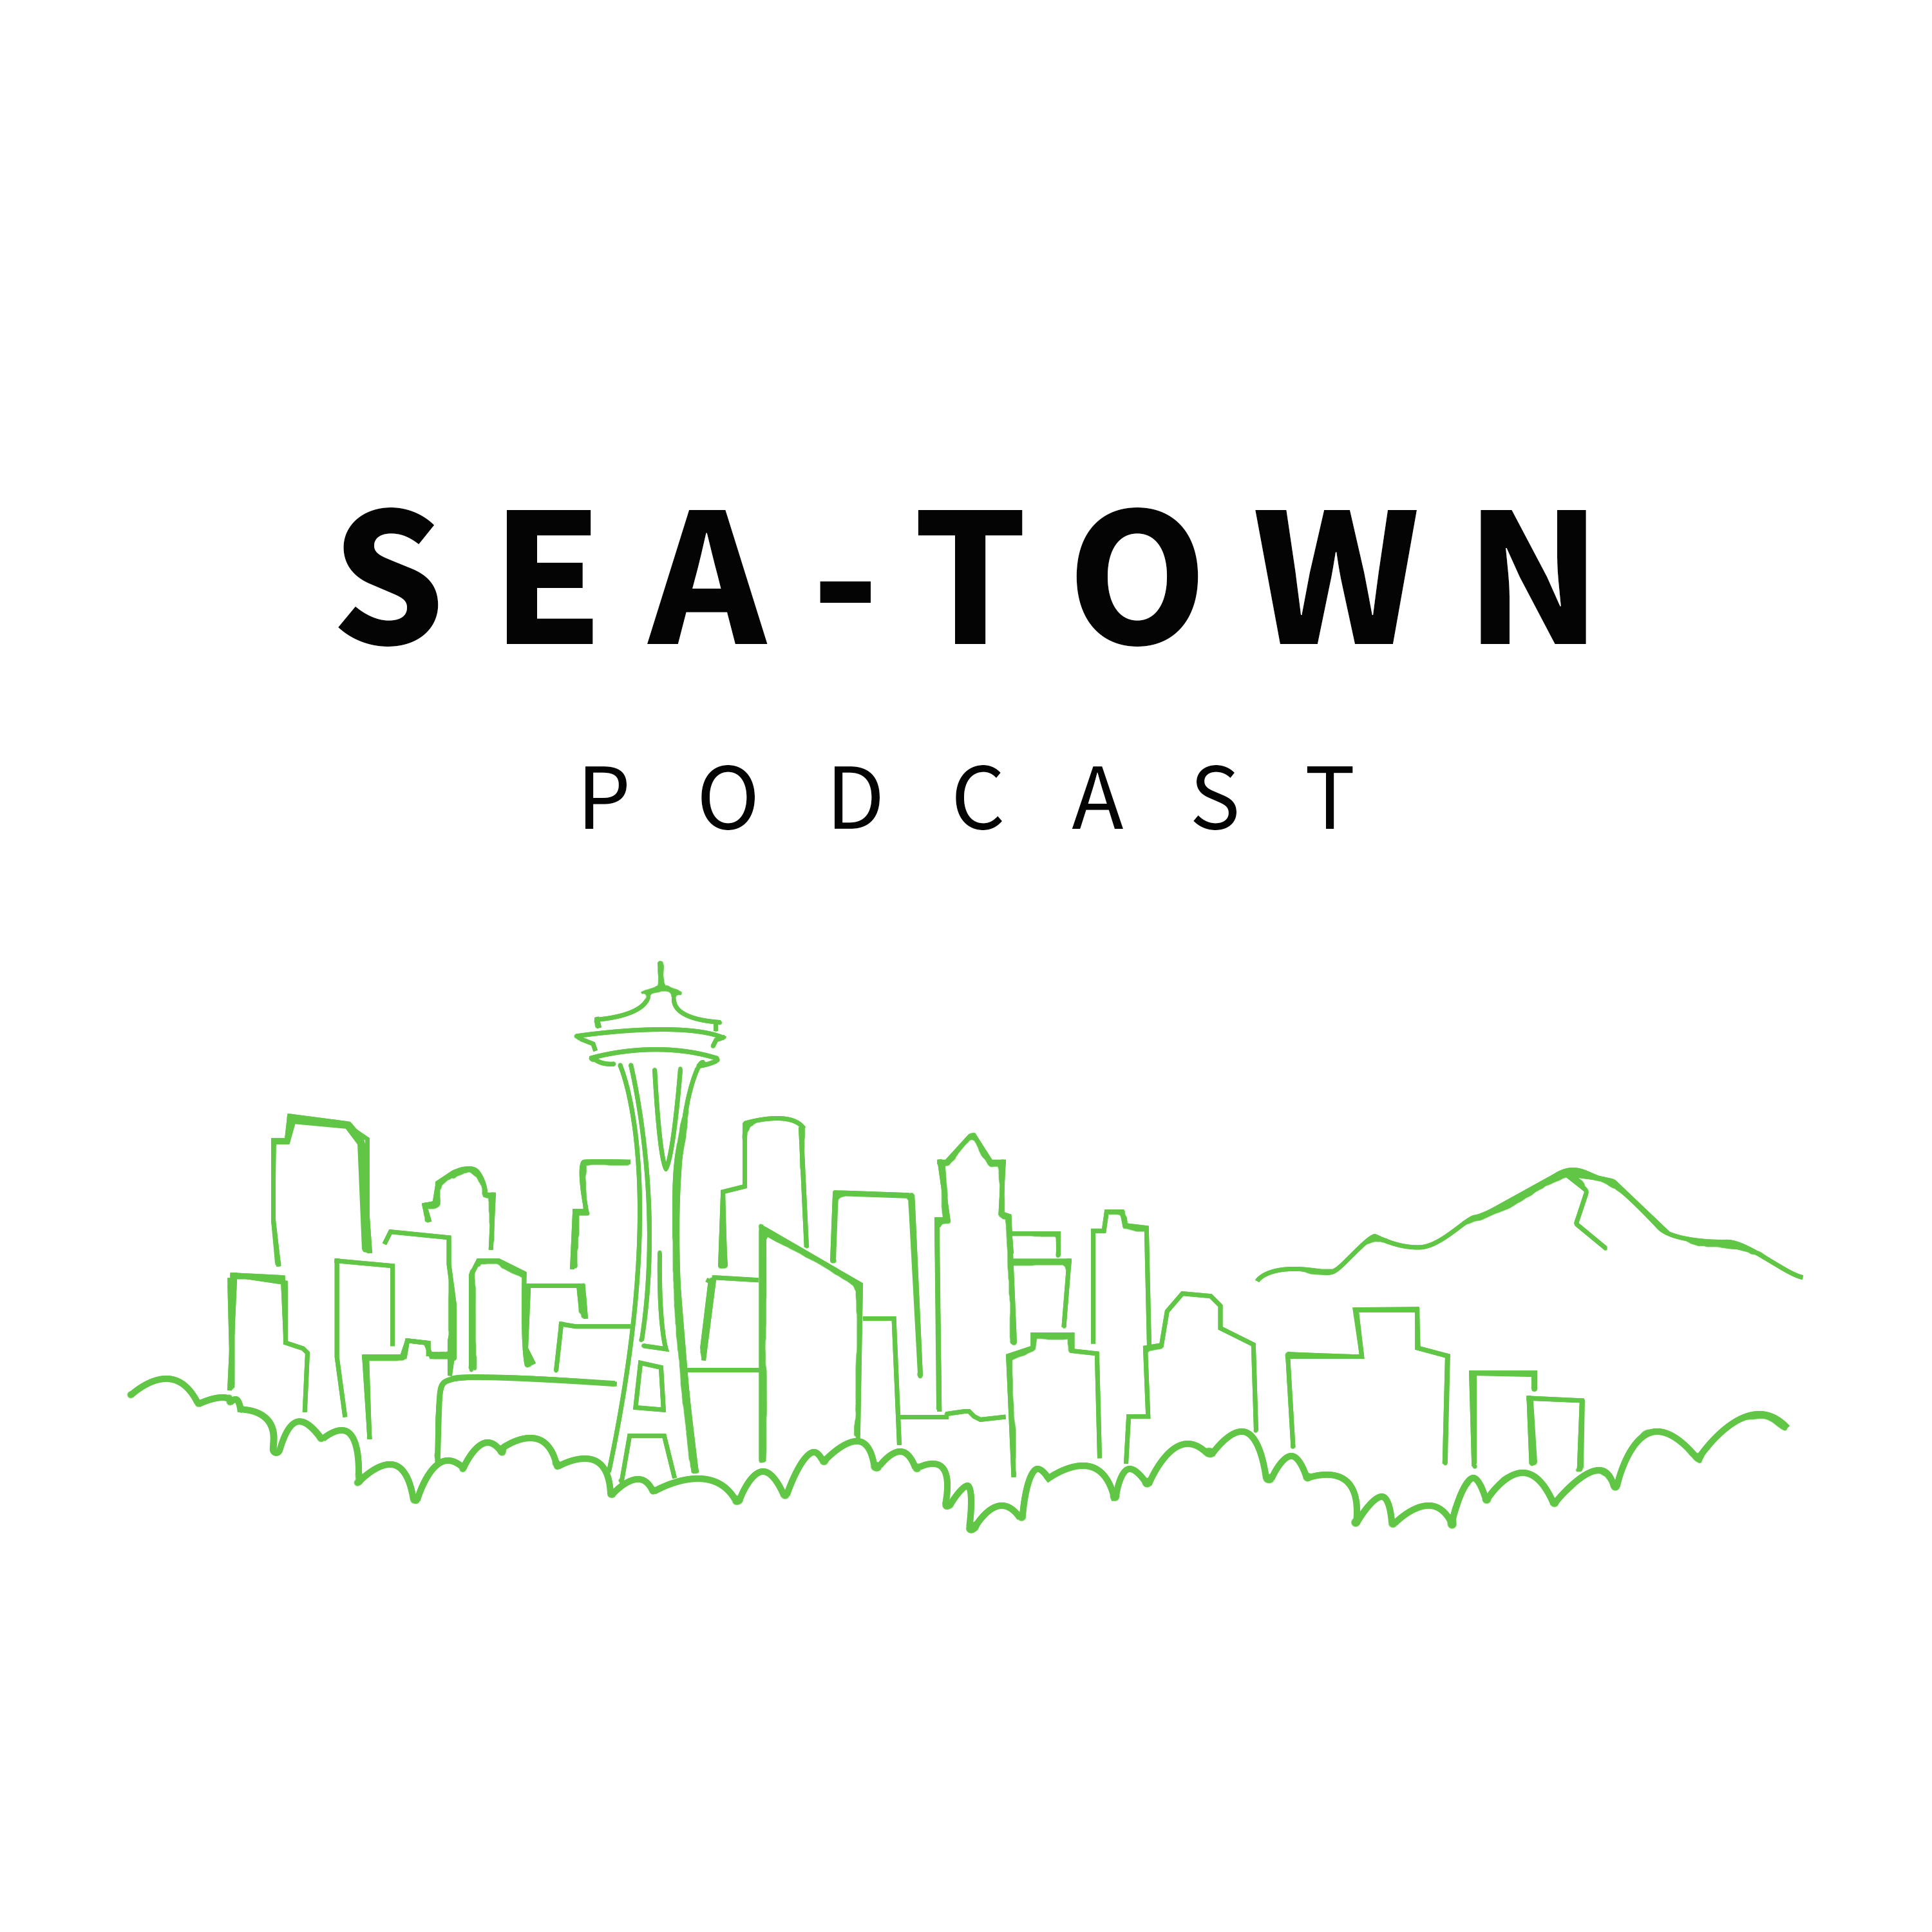 THE SEA-TOWN PODCAST: Interviewing Seattle's Business Leaders and Entrepreneurs show art